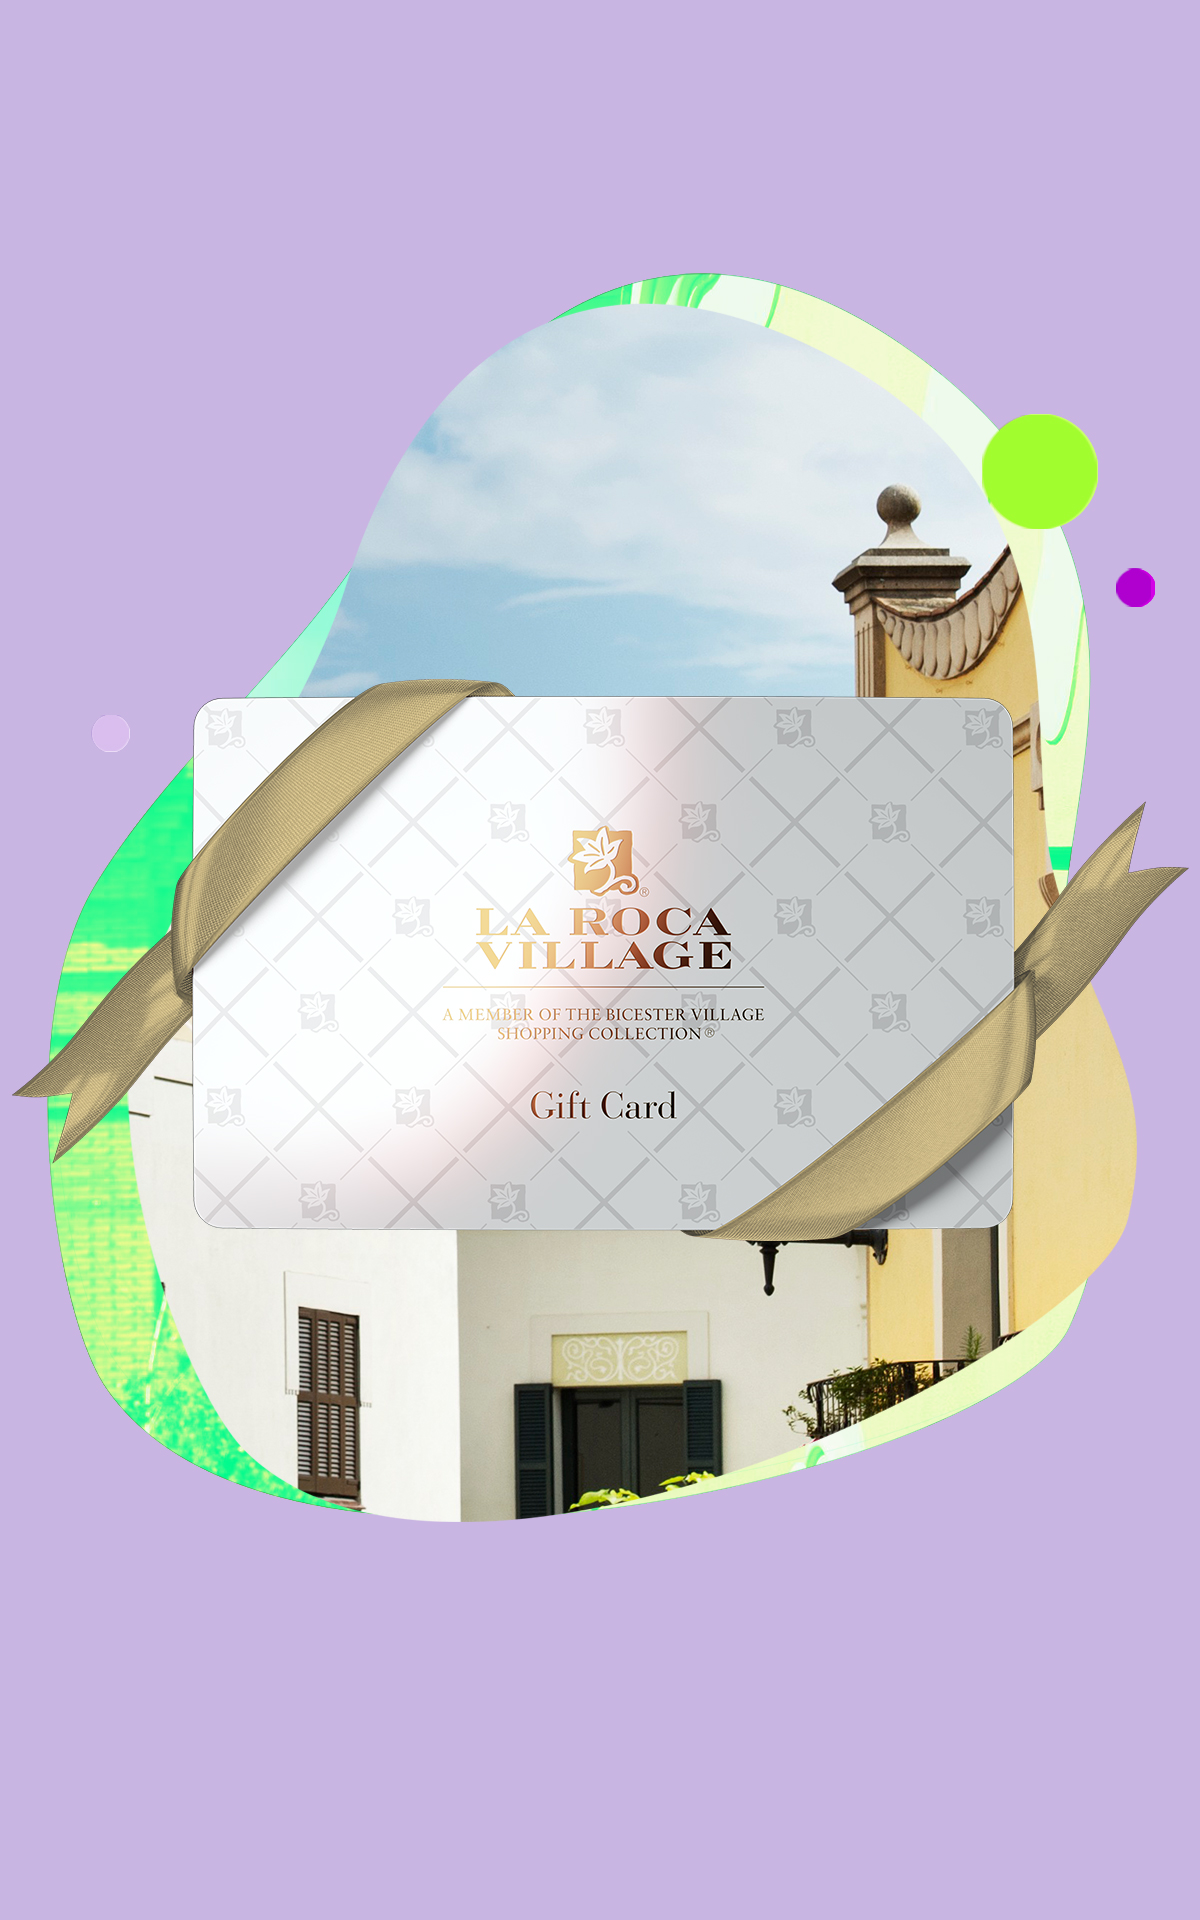 La Roca Village Gift Card